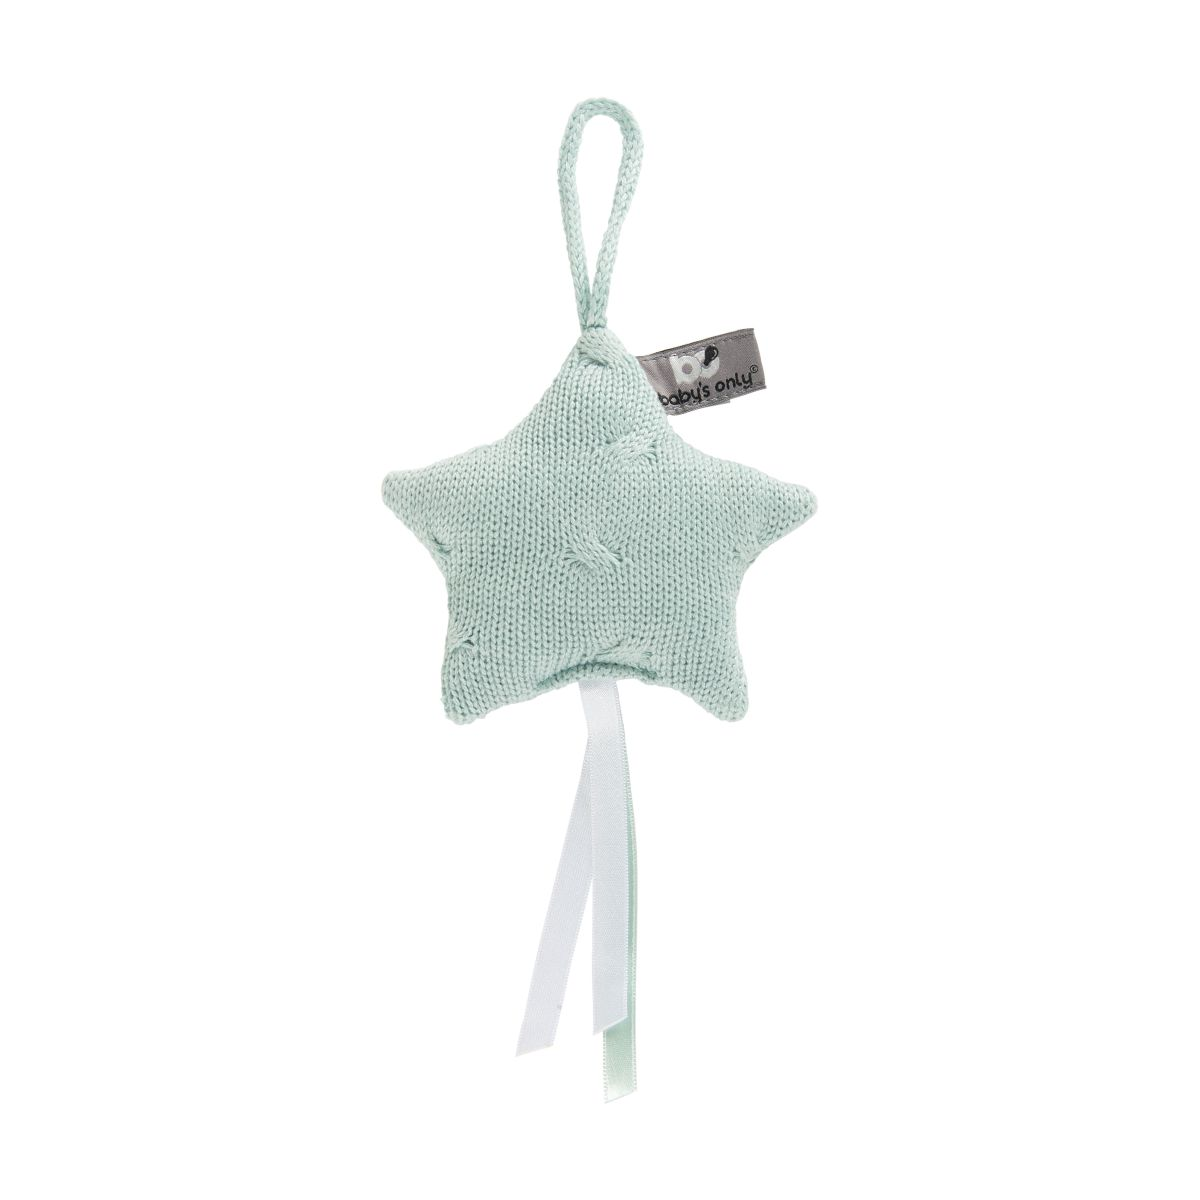 babys only 0133809 decoratiester cable mint